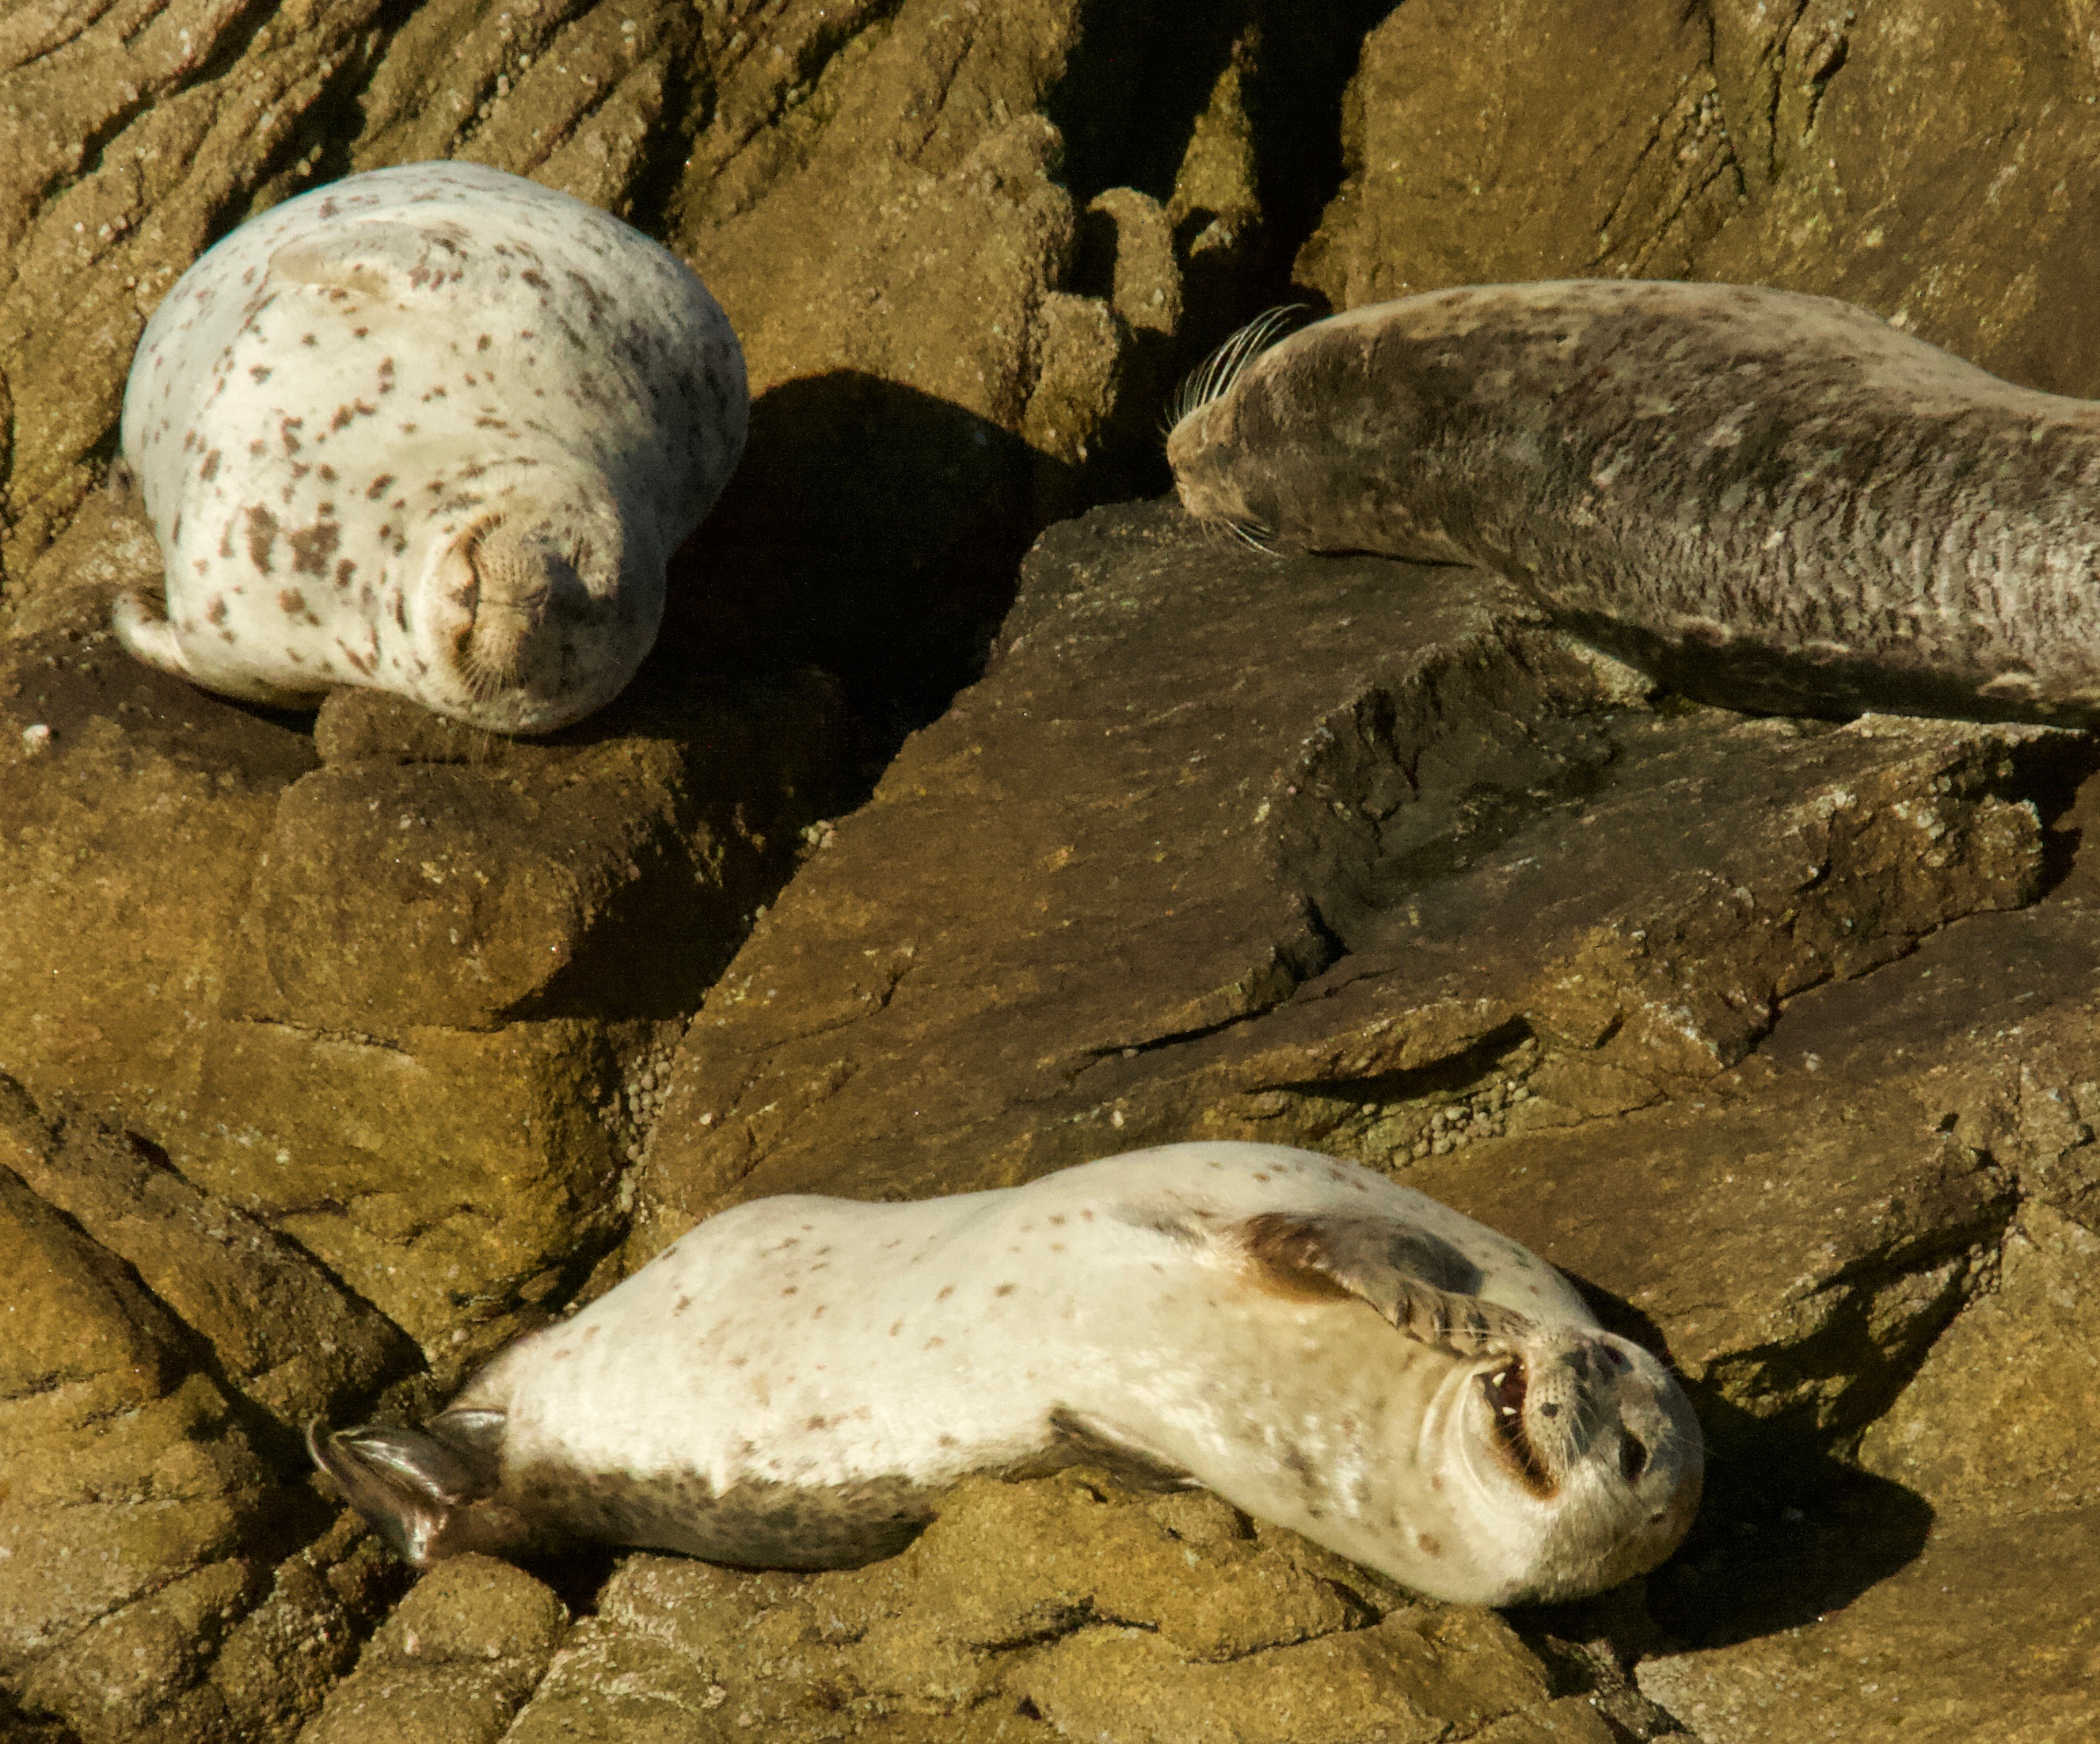 Three Harbor Seals On A Rock, One Grinning And Covering Her Mouth With Her Flipper